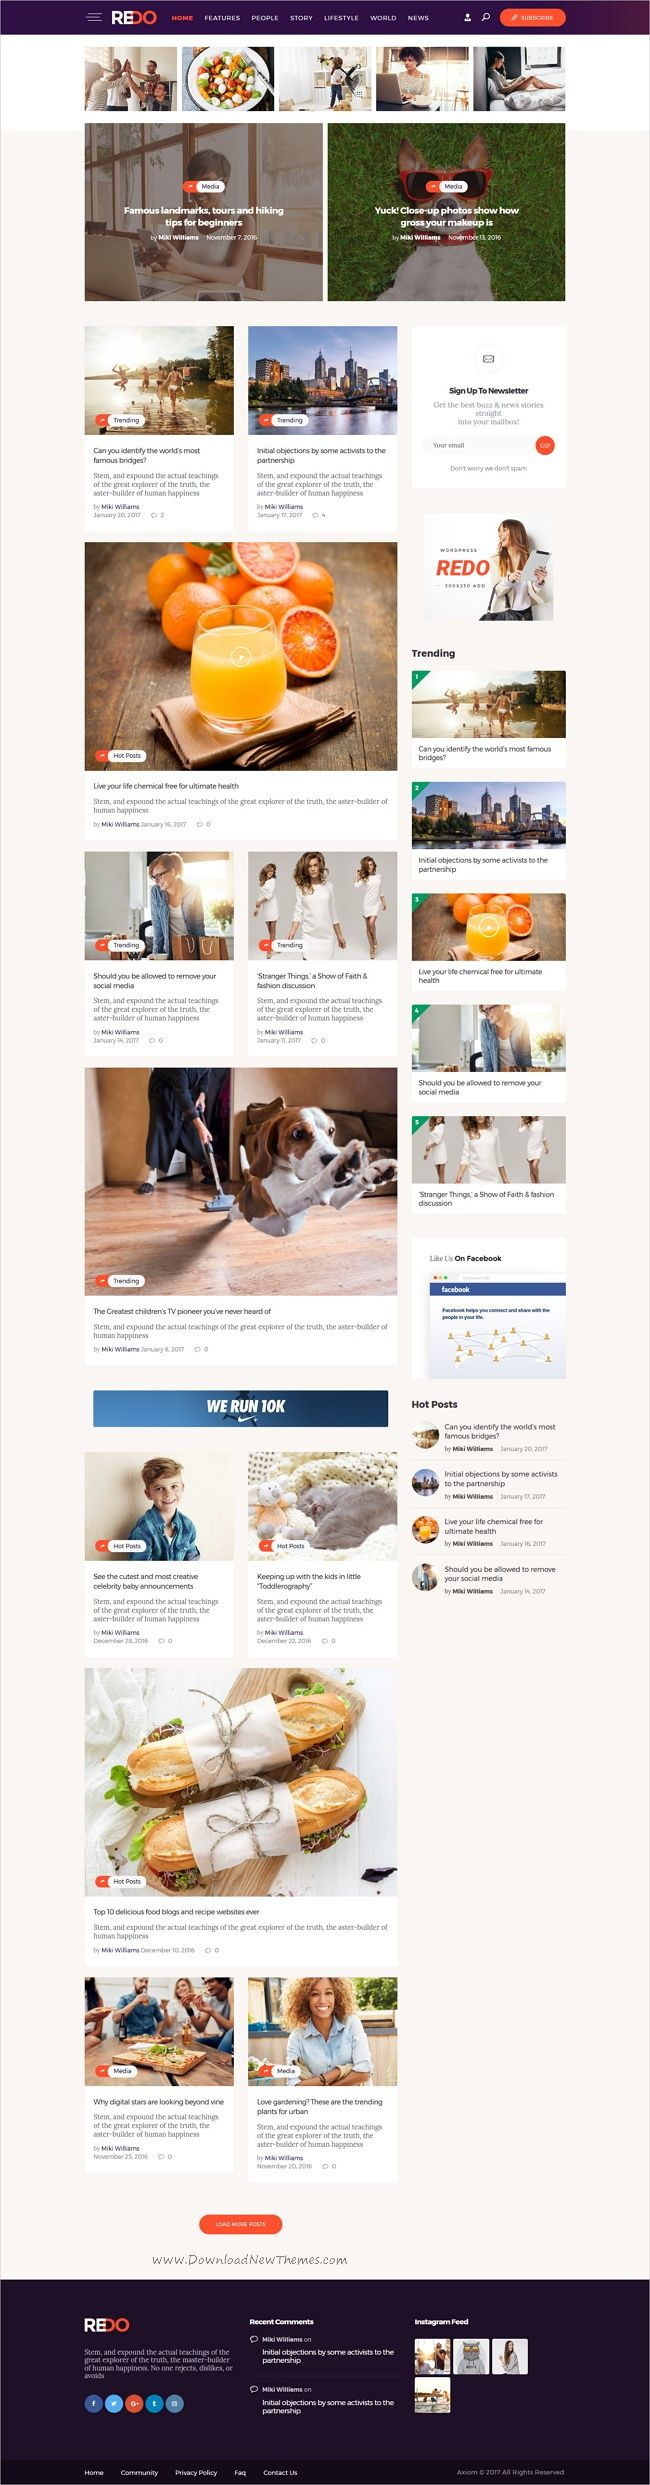 Lovely 10 Envelope Template Illustrator Thick 10 Steps Writing Resume Round 100 Day Glasses Template 1096 Form Template Young 15 Year Old First Resume Green2 Column Css Template 25  Best Ideas About Portal Website On Pinterest | Web Design ..